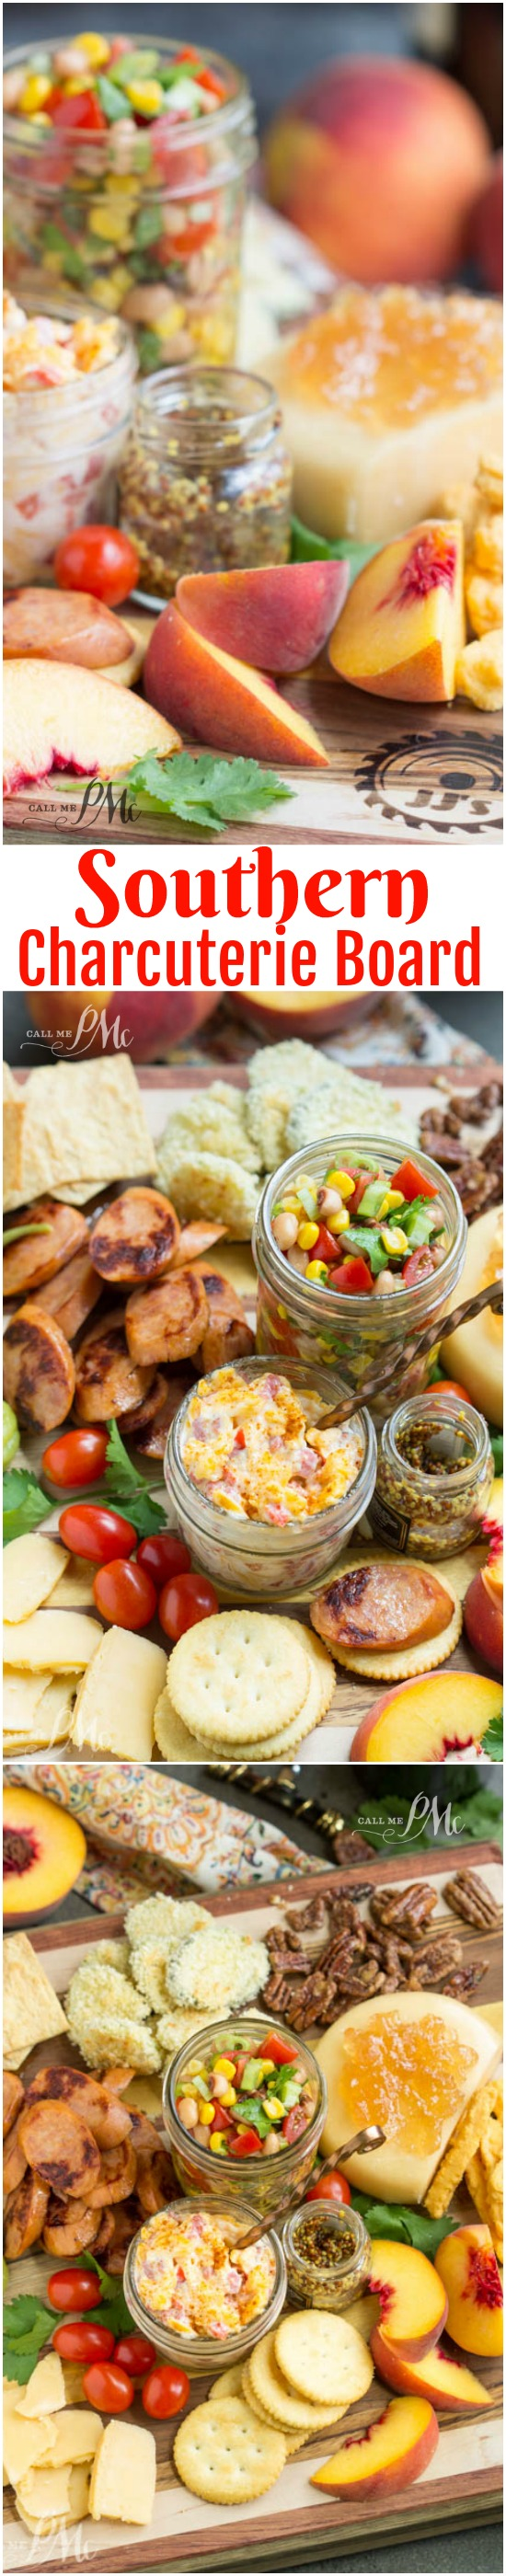 Southern Inspired Charcuterie Board with Black Eyed Pea Salsa features crowd-pleasing Southern favorites both sweet and salty, crunchy and creamy for care-free evening entertaining. #charcuterie #cheeseboard #meatboard #entertaining #easy #easyentertaining